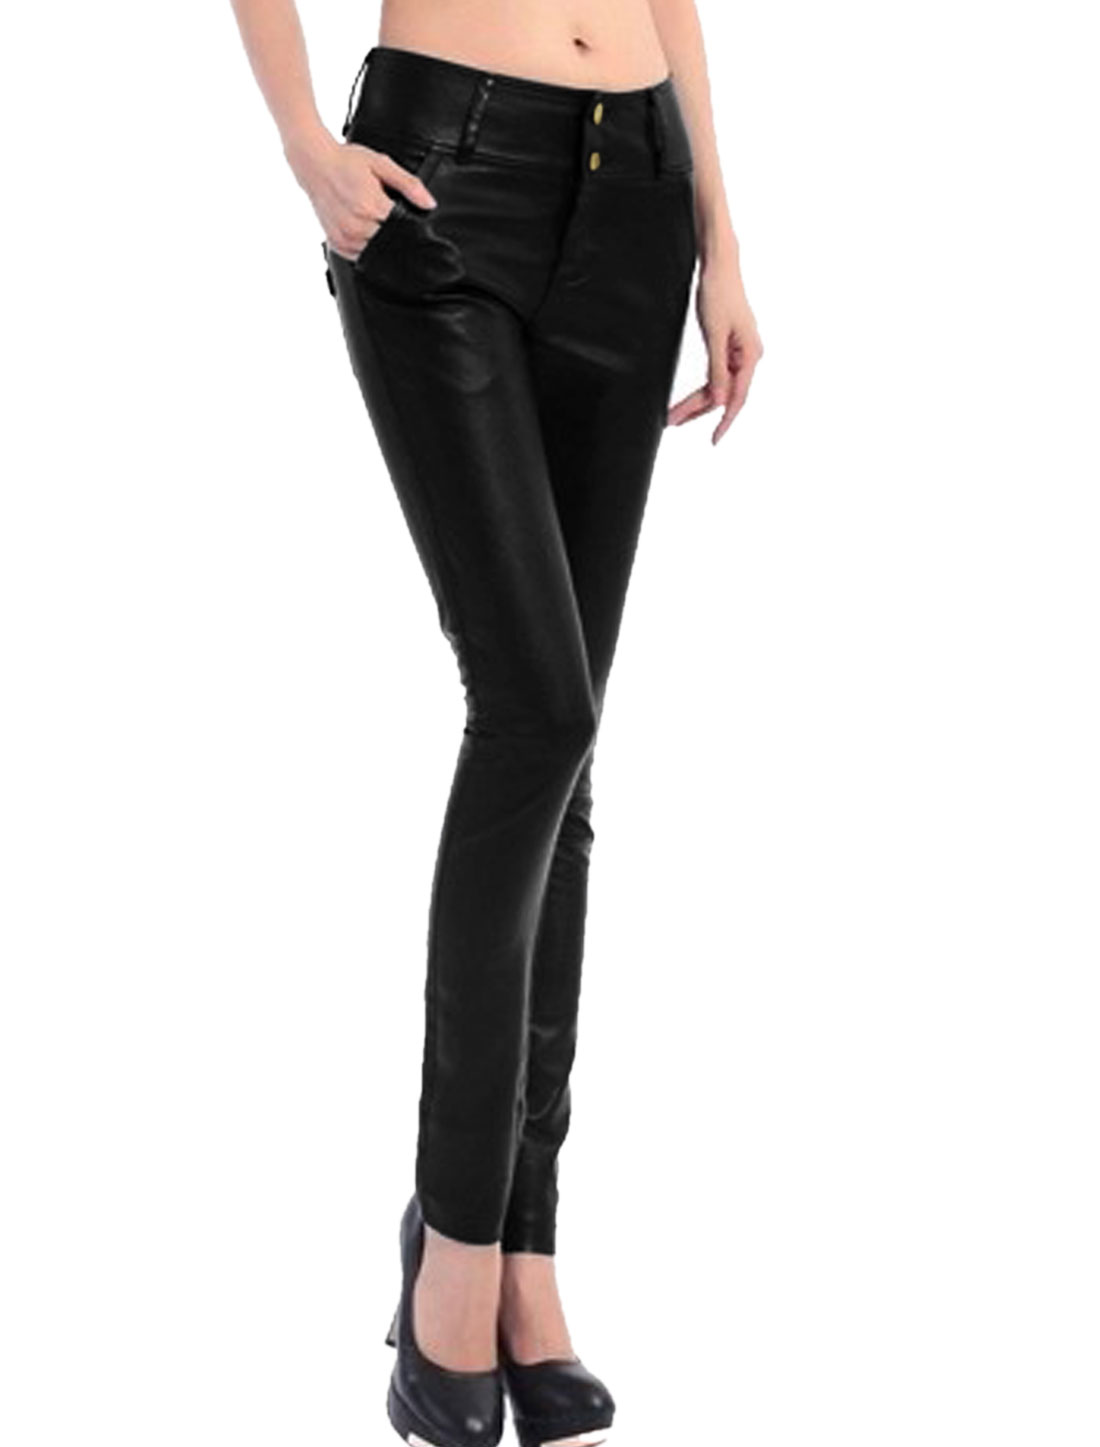 Women High Waist Two Pockets Back Skinny Imitation Leather Pants Black XS